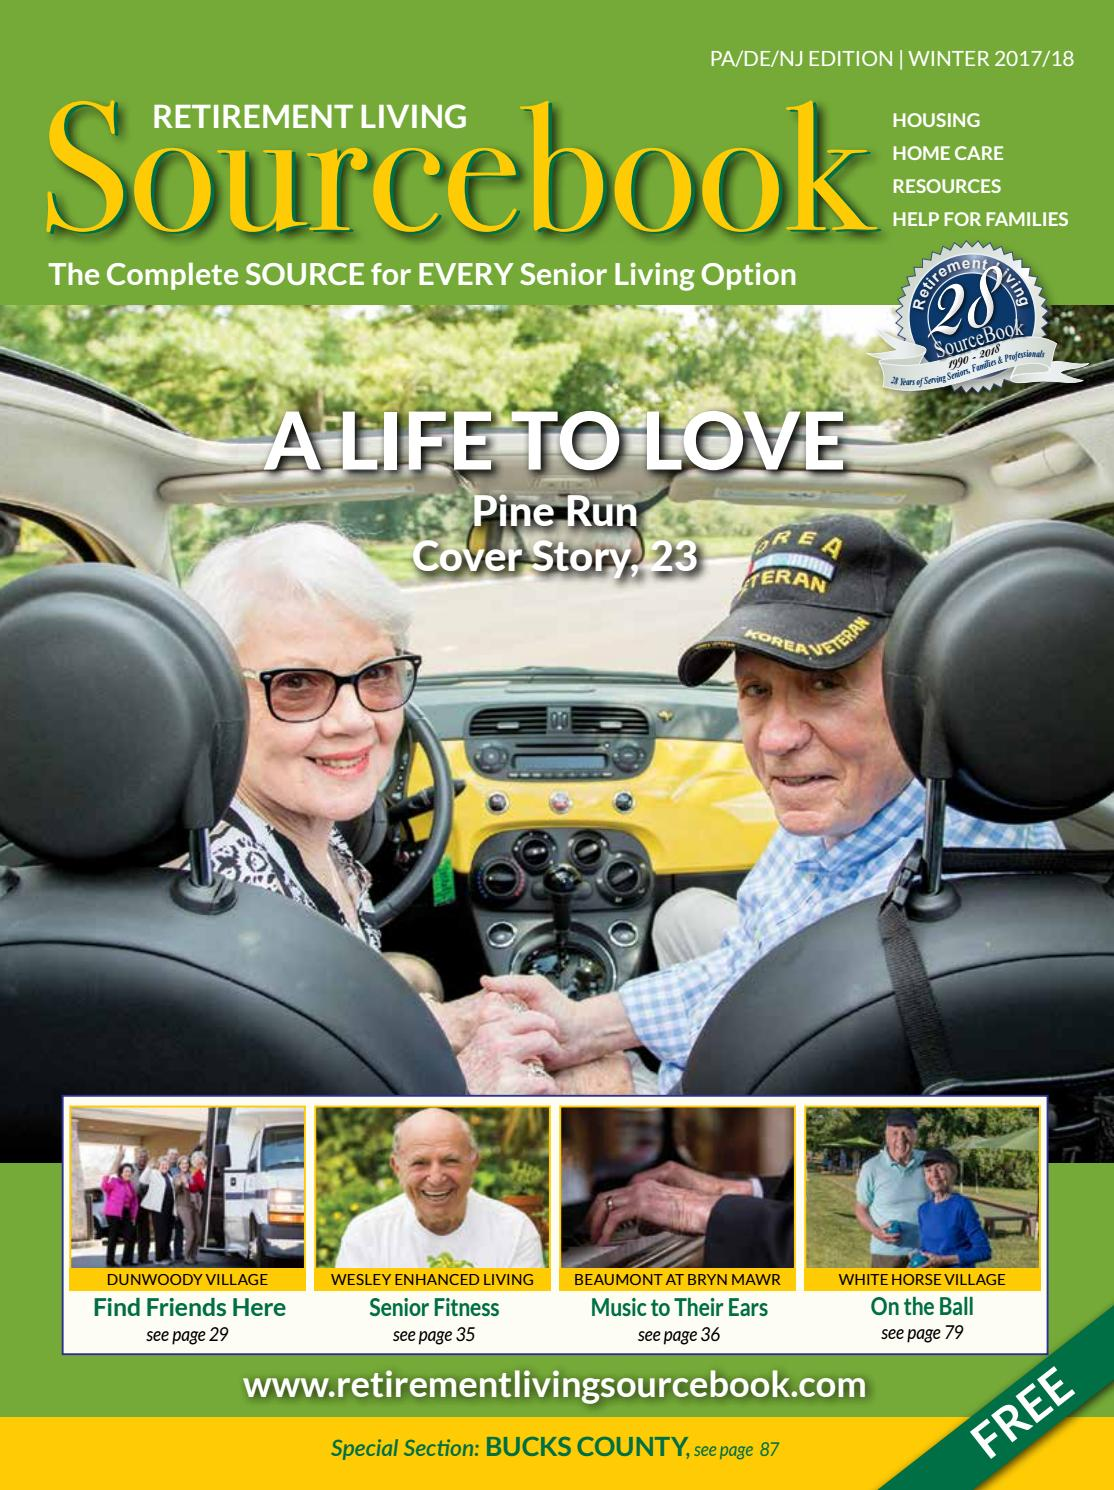 Guide to Retirement Living Sourcebook Delaware Valley Edition Winter  2017-2018 by Retirement Living Sourcebook - issuu